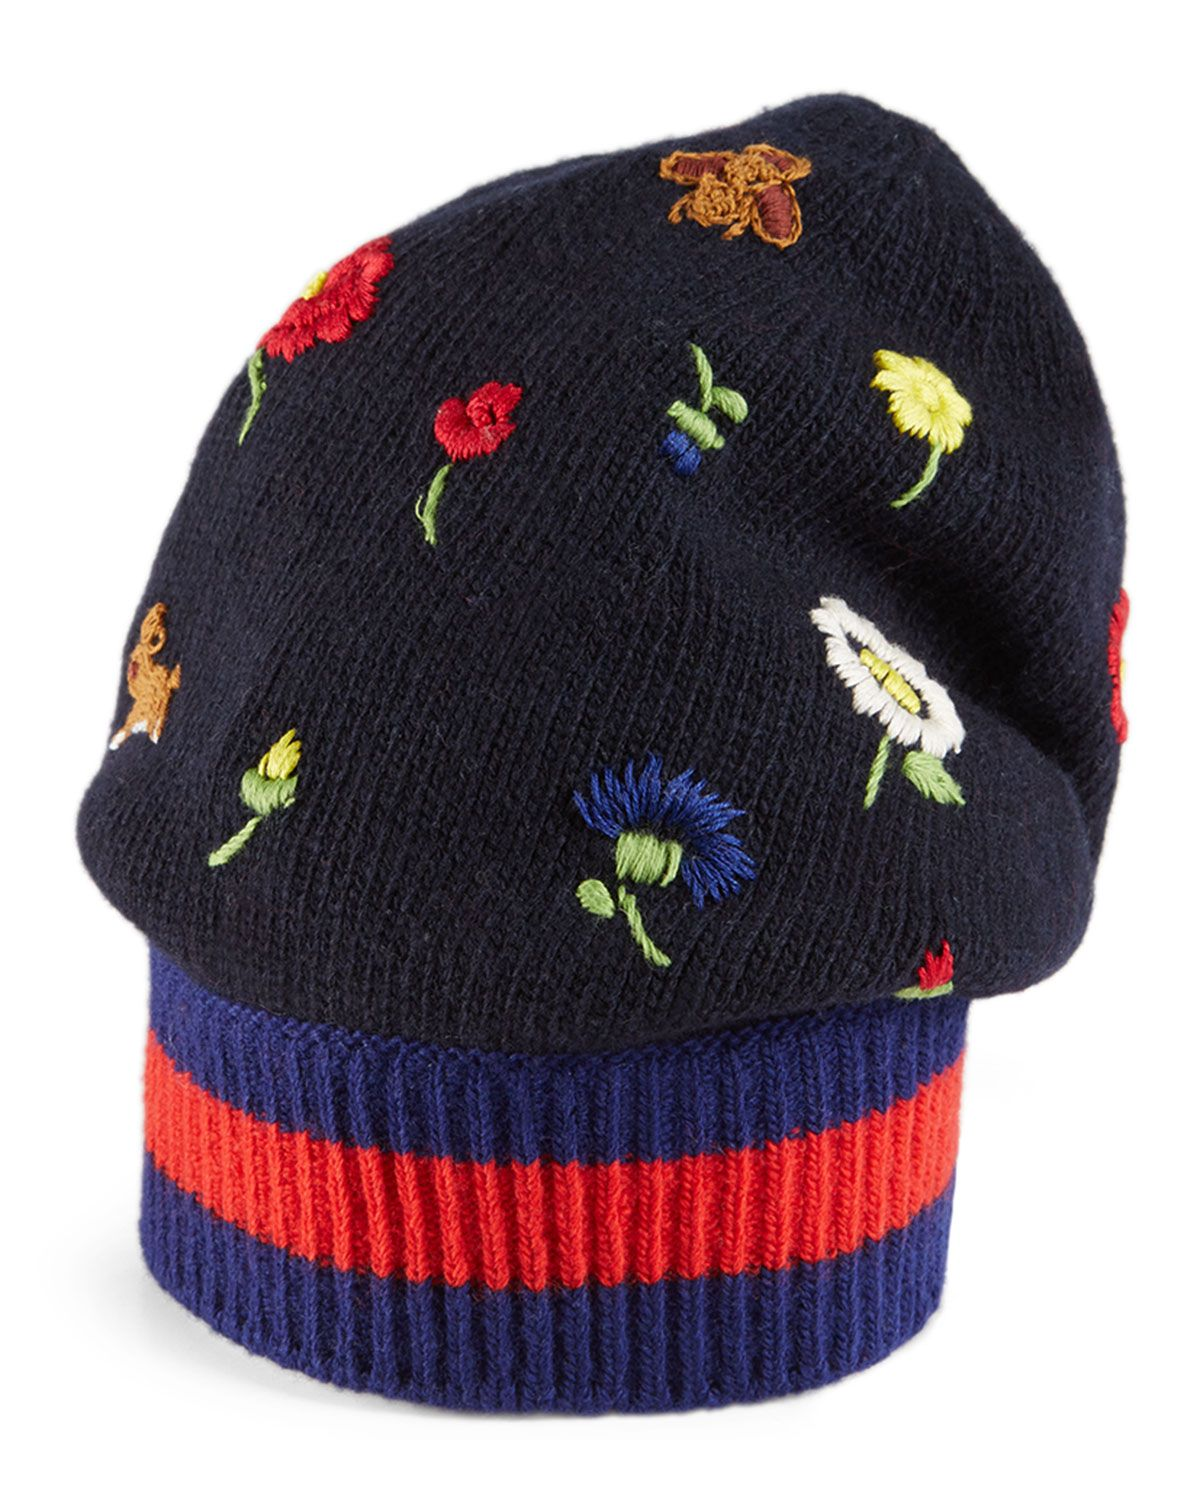 Gucci Flower & Bee-Embroidered Knit Hat, Navy/Blue